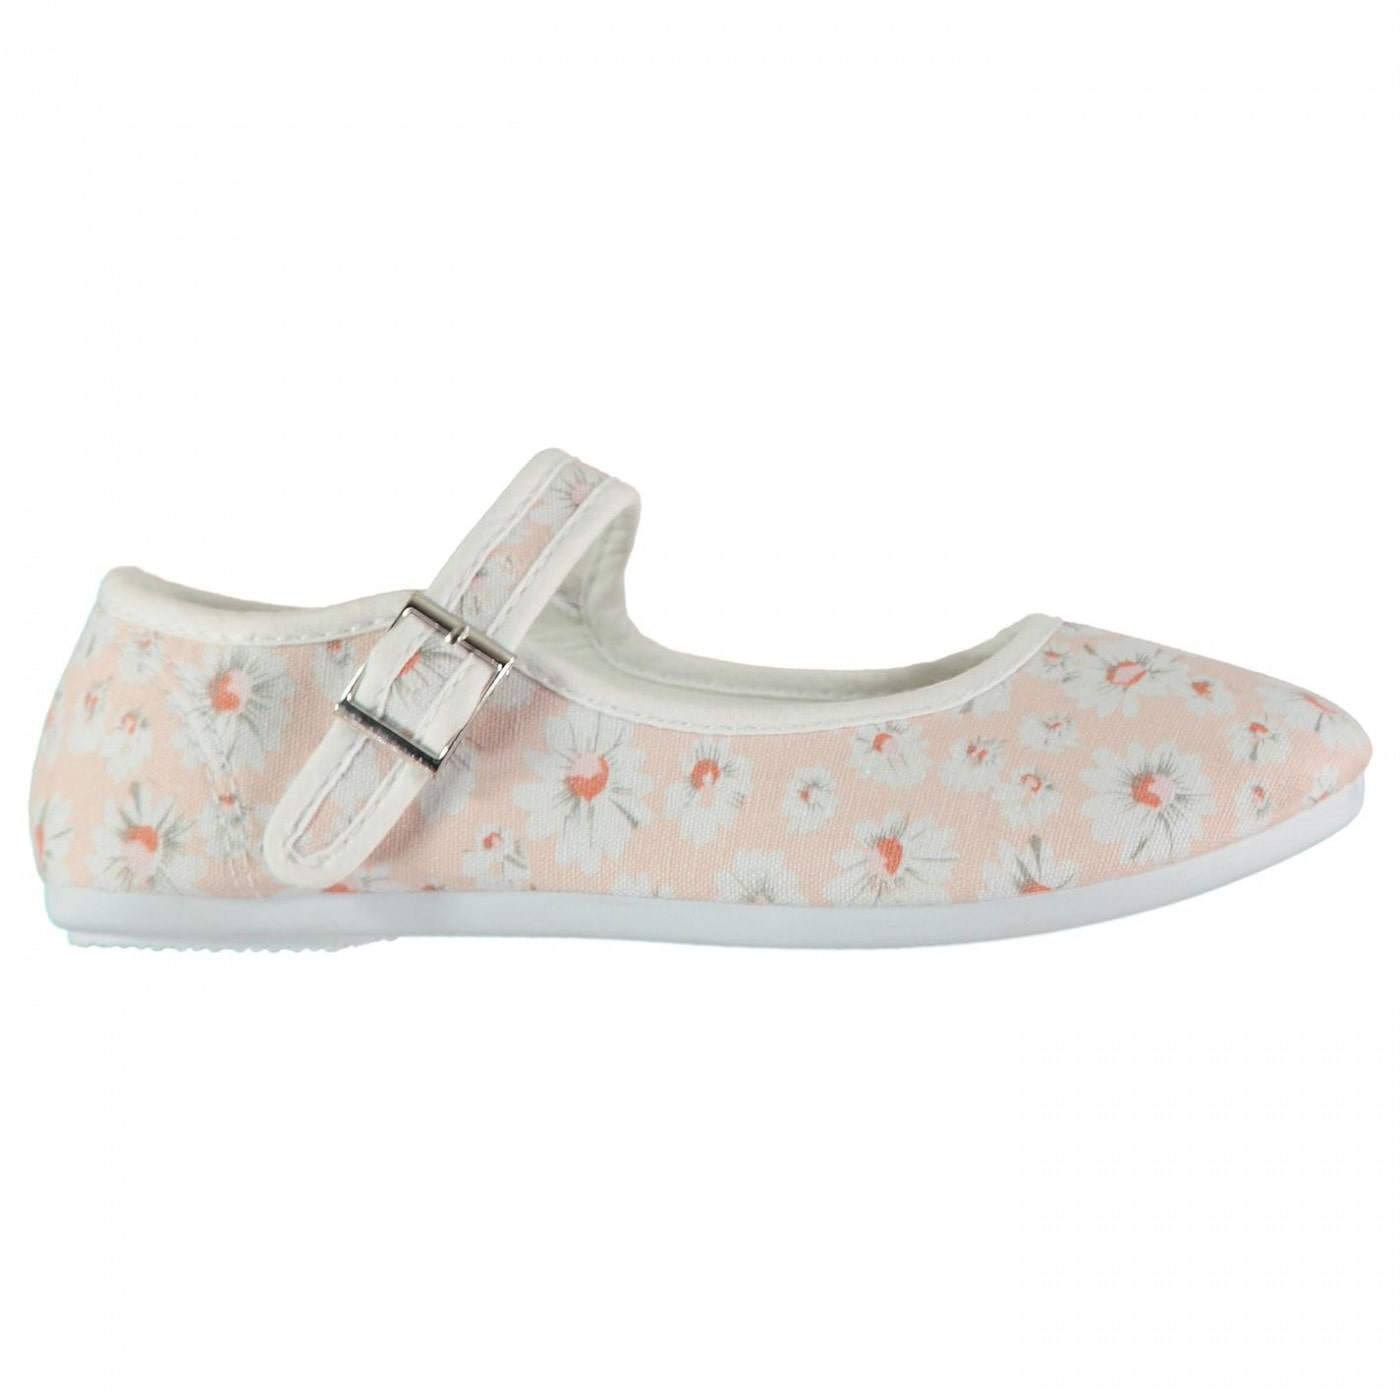 Slazenger Canvas Mary Jane Child Girls Shoes